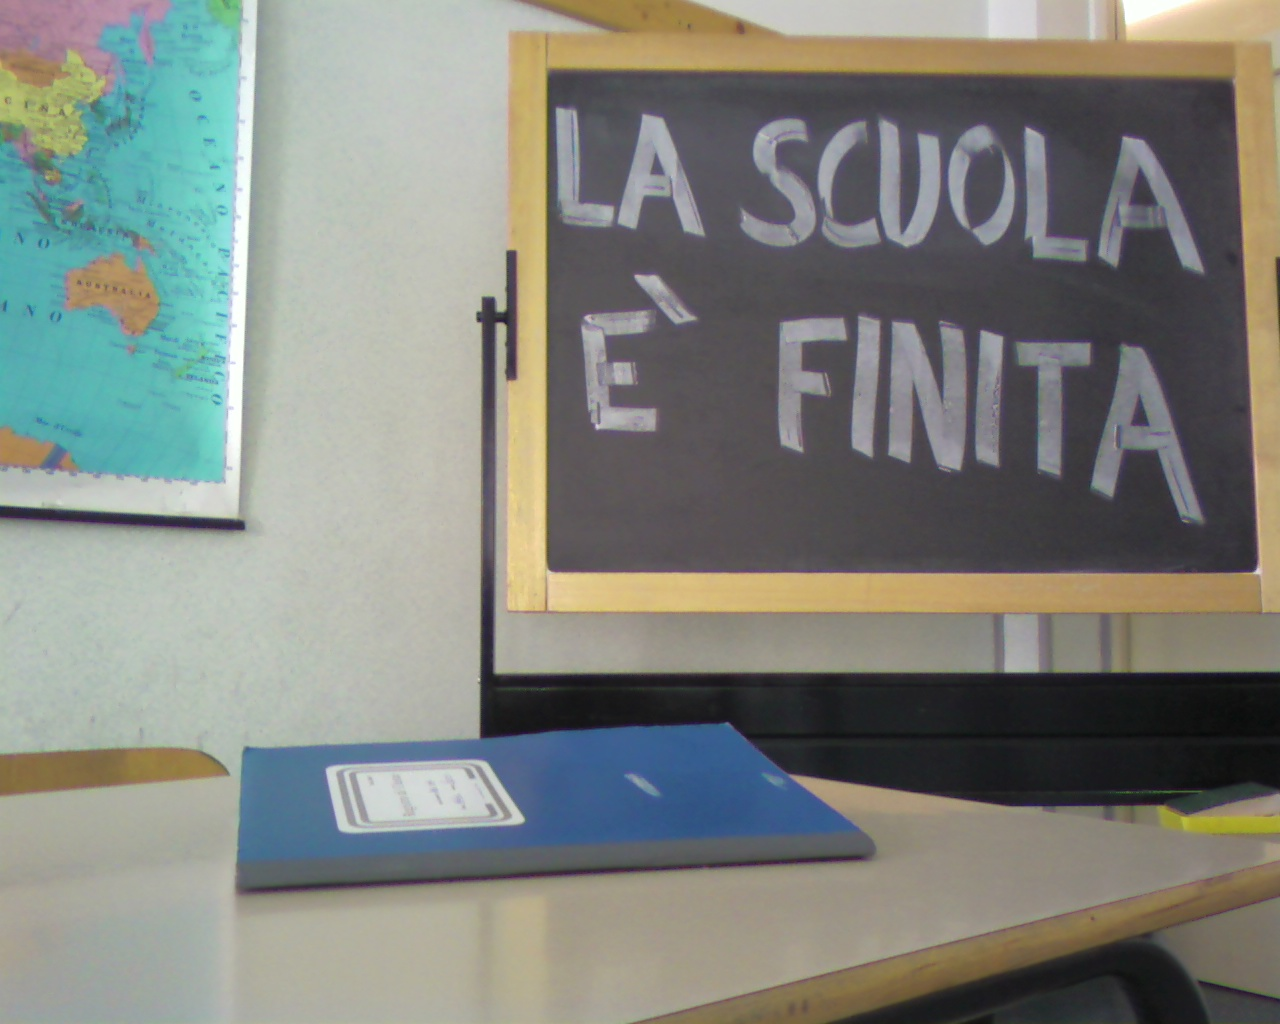 http://mariobadino.noblogs.org/resource/generale/download/foto_scuola.jpg